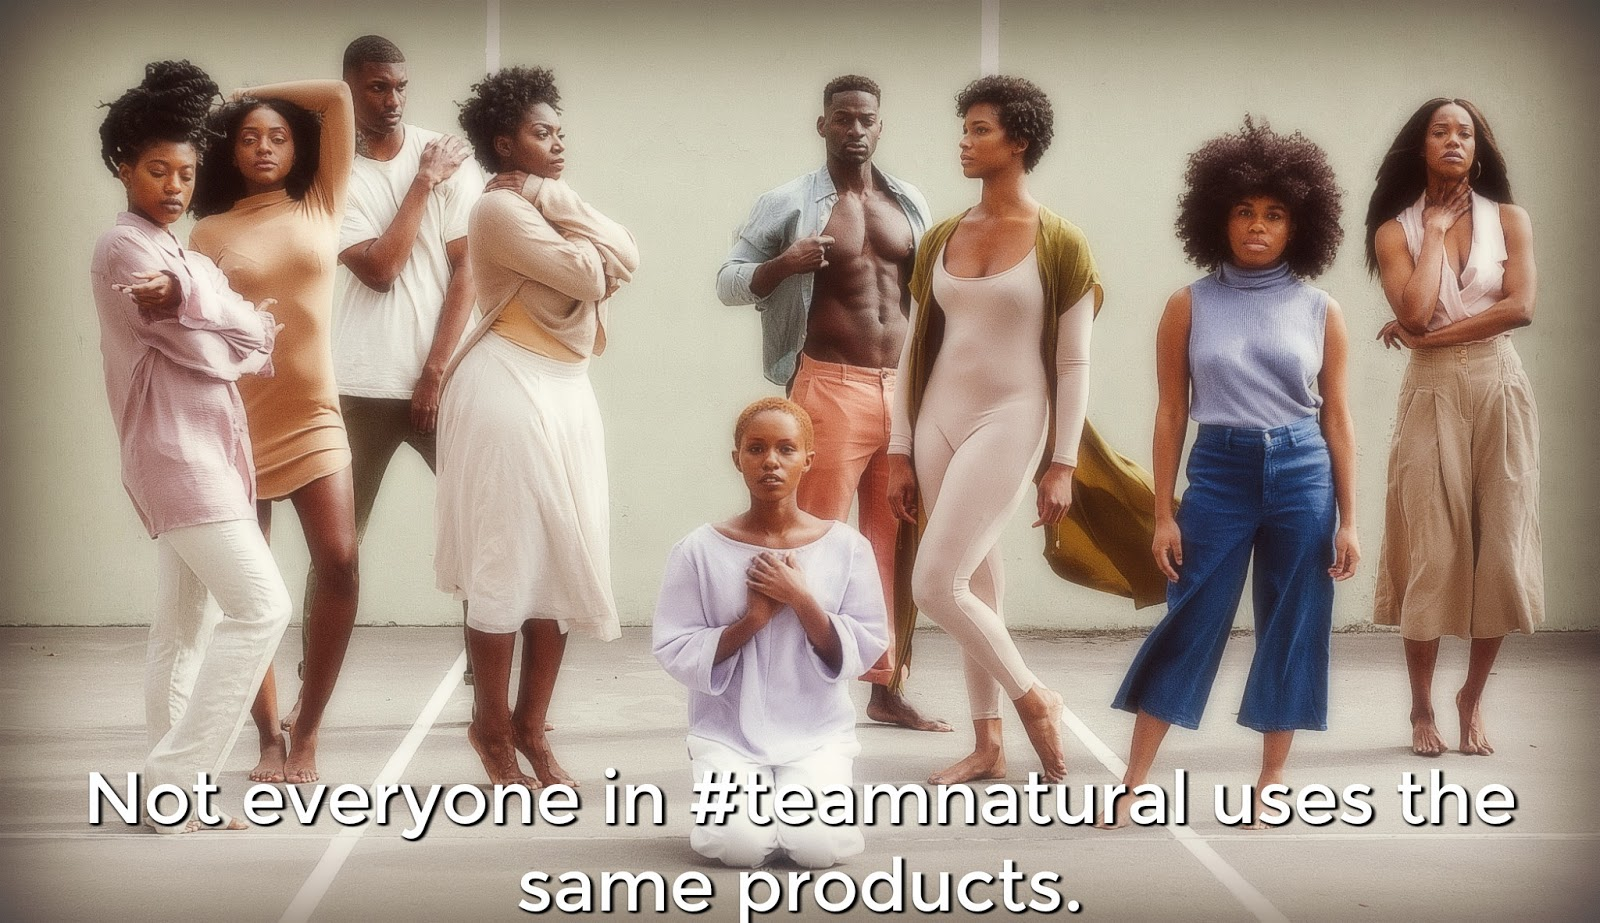 Black women are going natural every day but how much do they know about #teamnatural? Natural hair is not a fad, but what exactly IS IT?